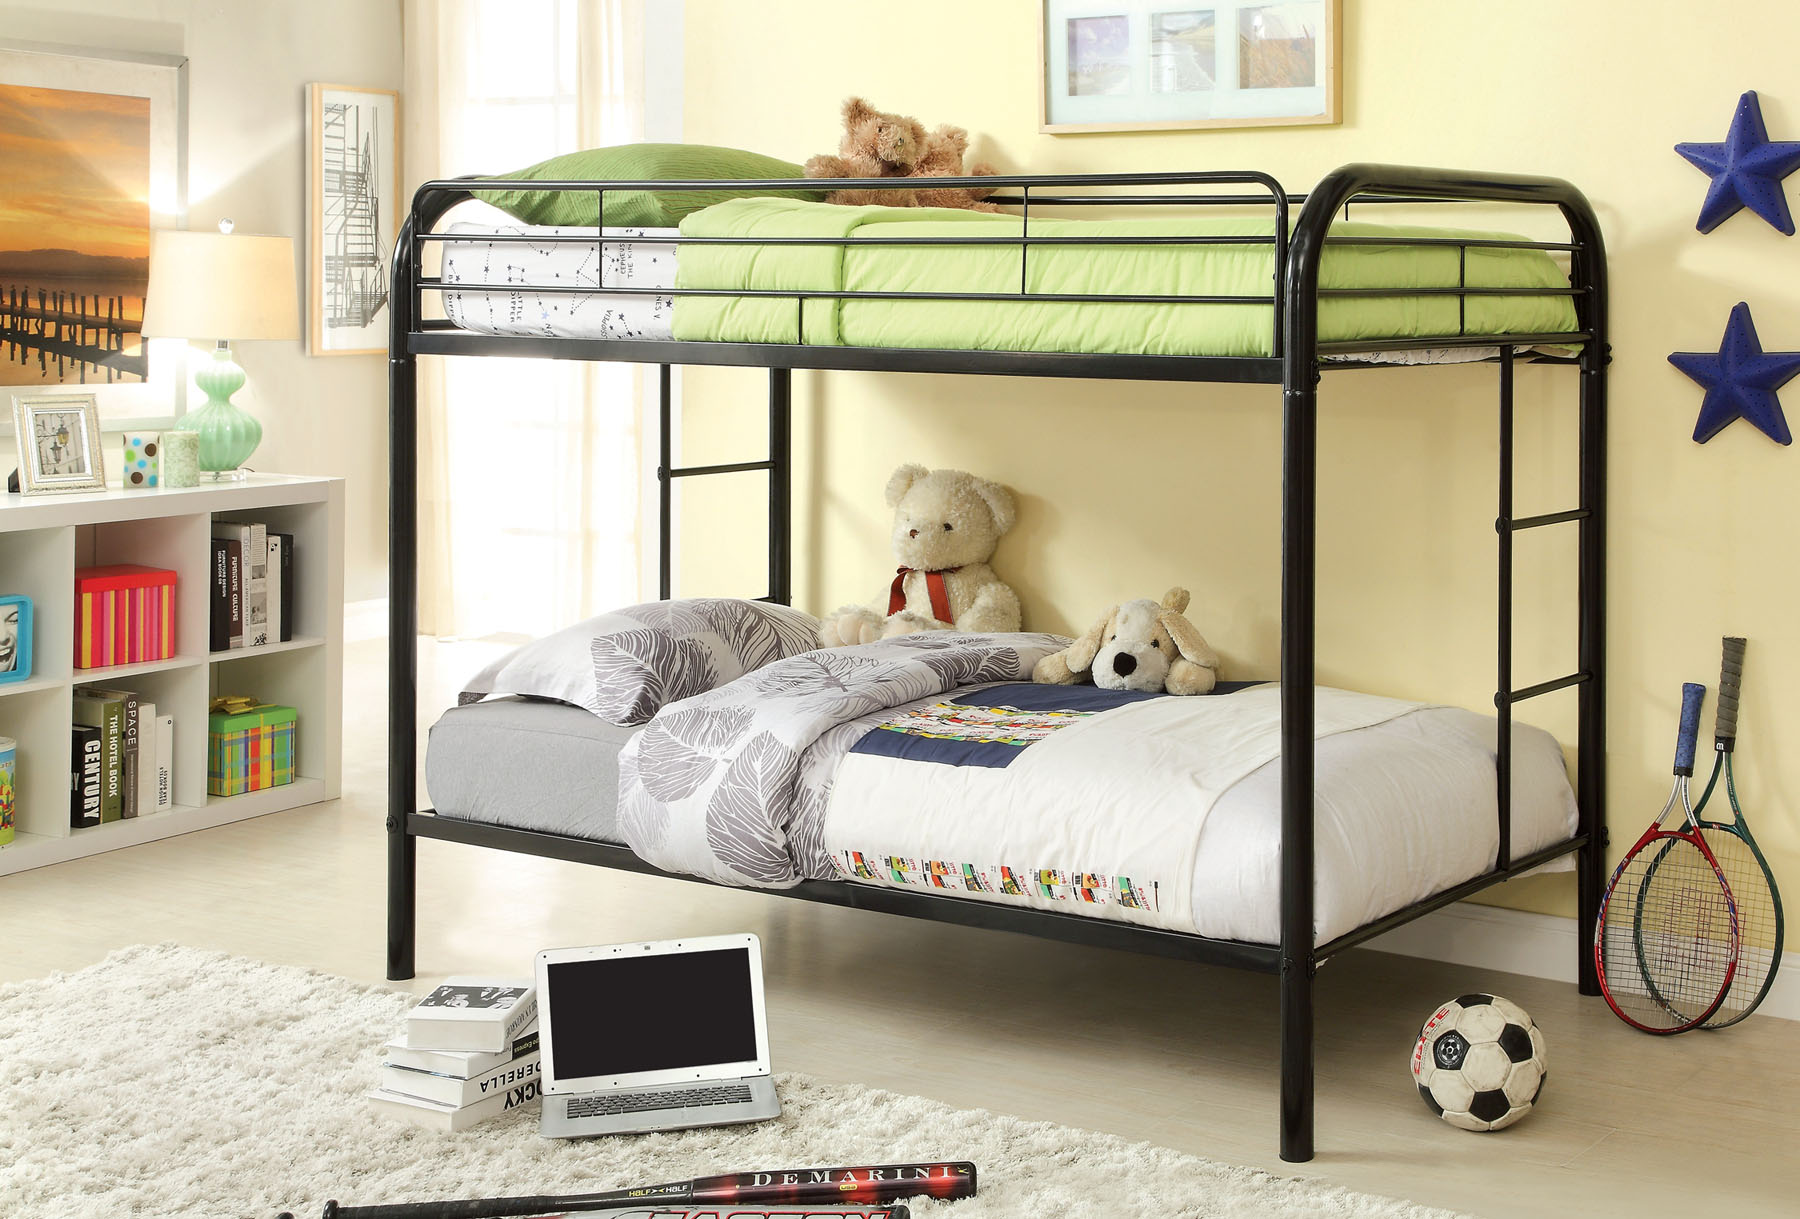 Metal Bunk Bed Special $365 With Mattress